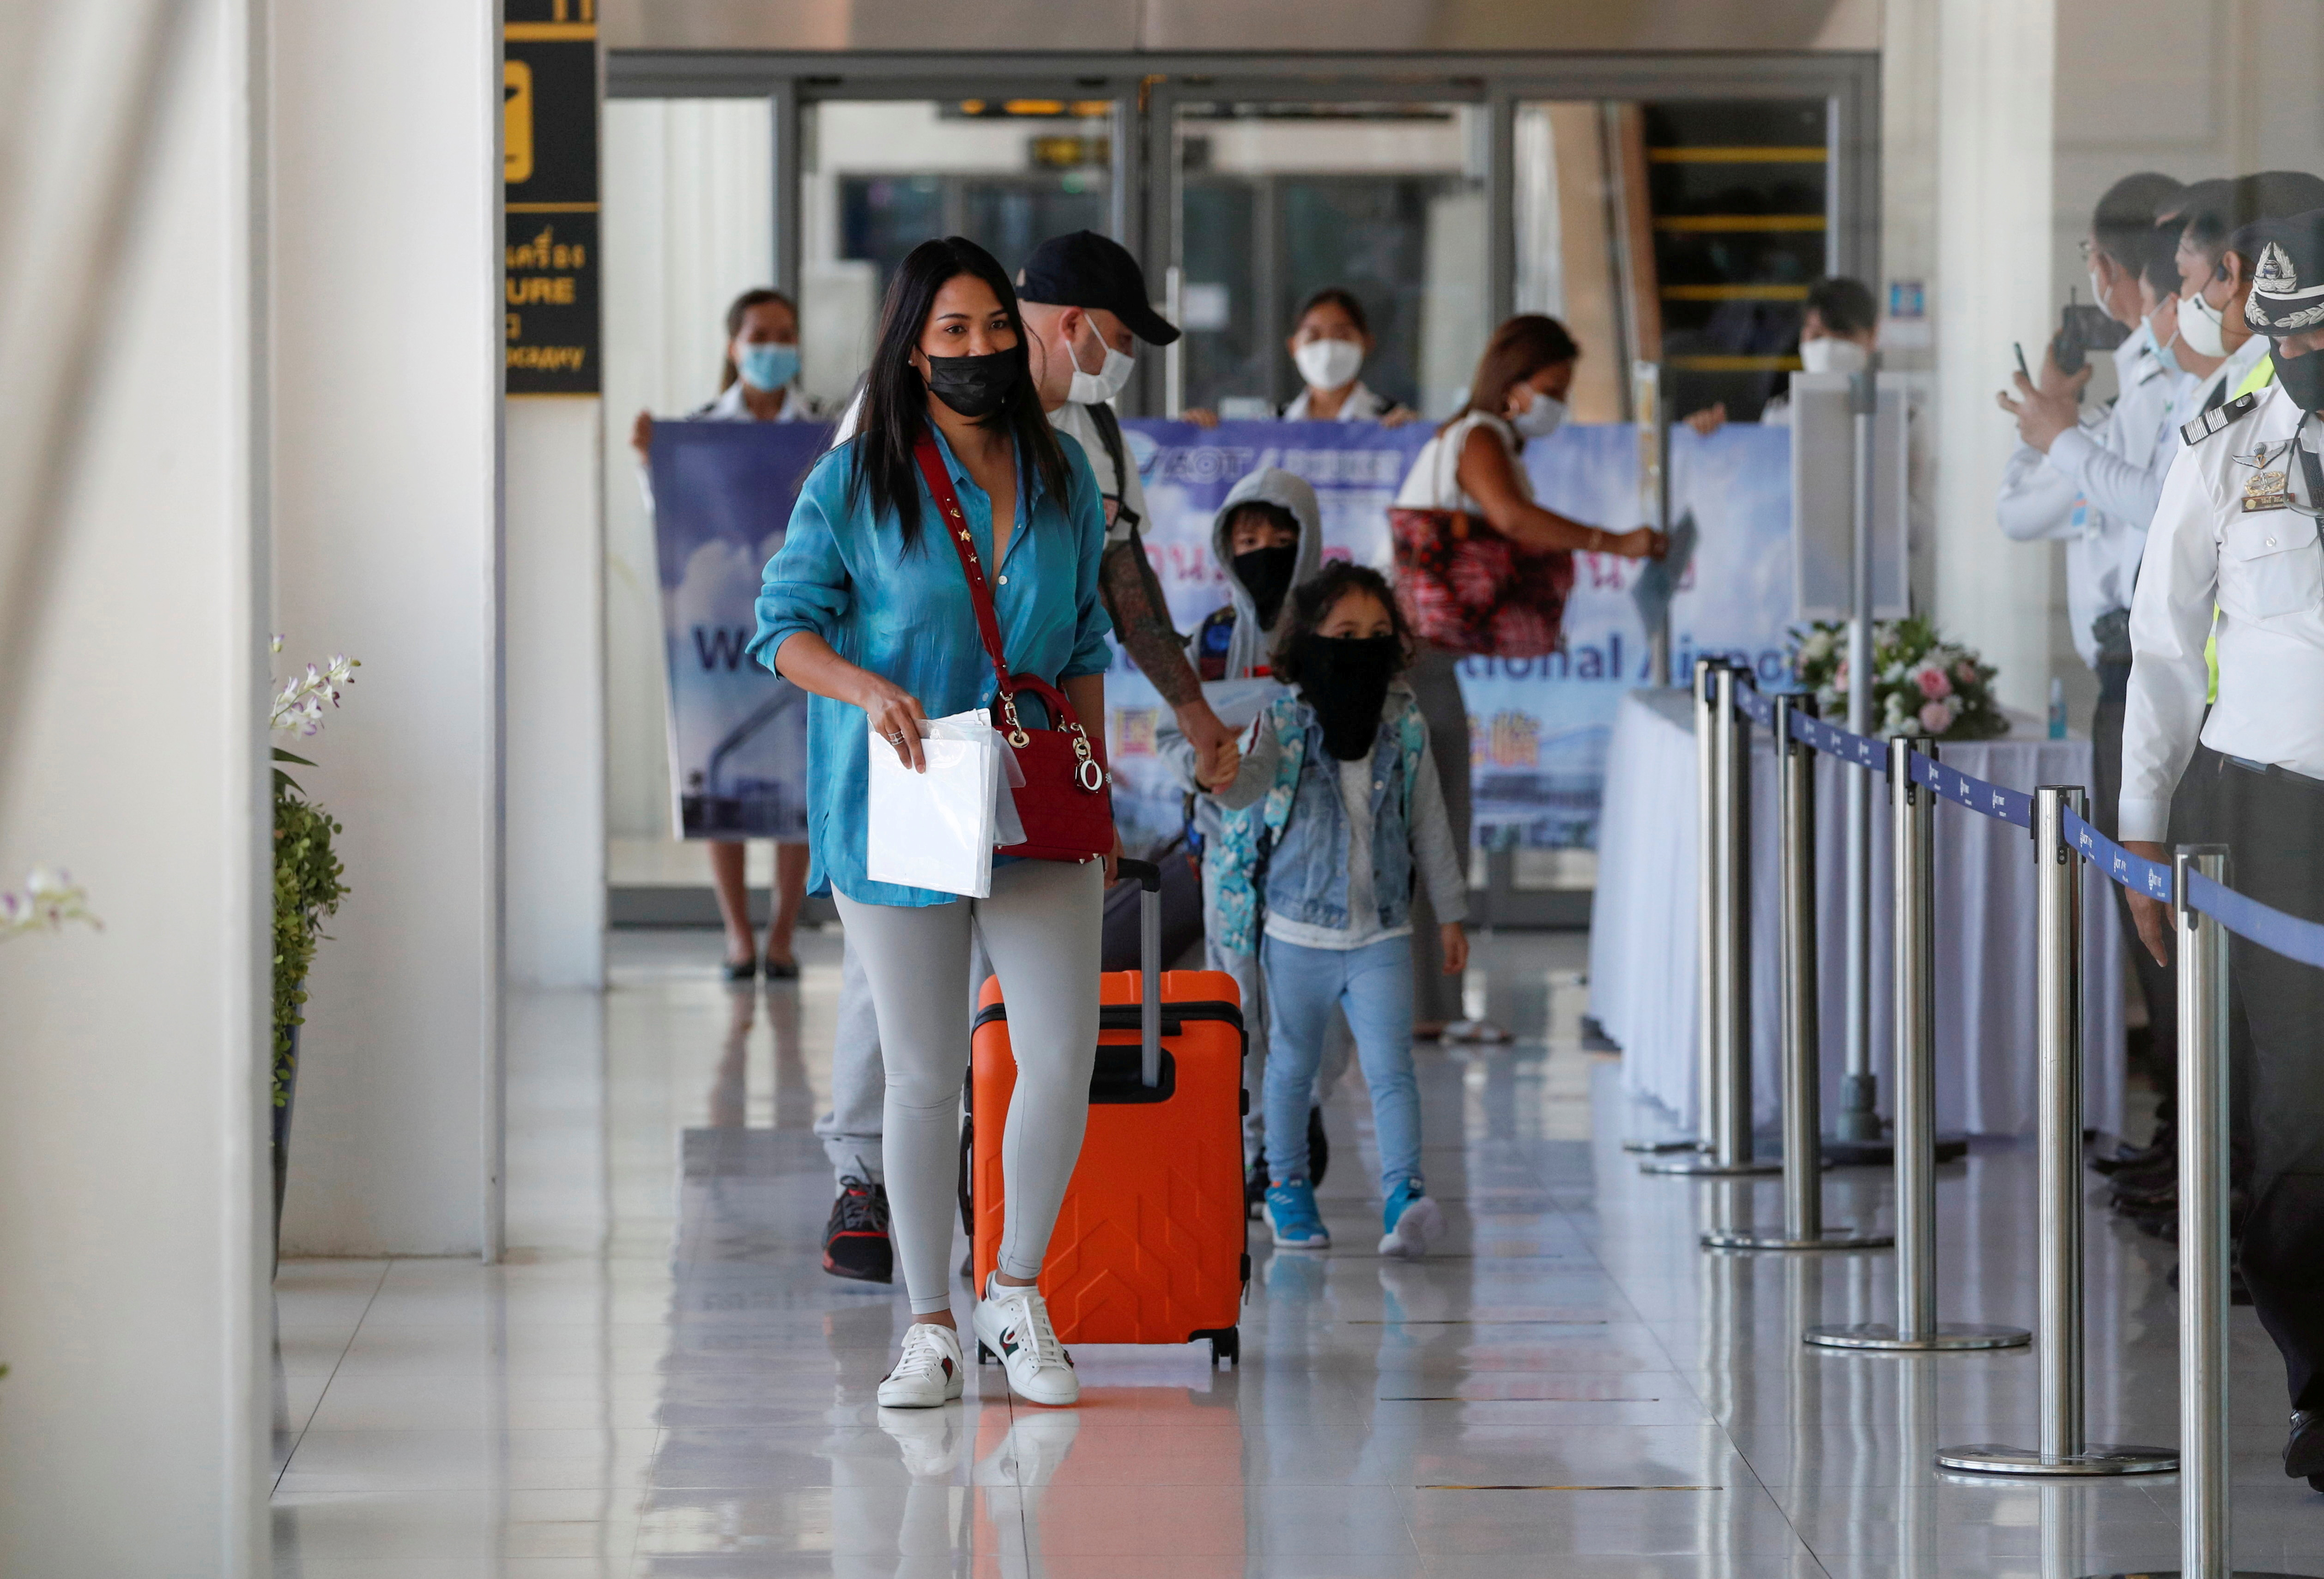 The first foreign tourists arrive at the airport as Phuket reopens to overseas tourists, allowing foreigners fully vaccinated against the coronavirus disease (COVID-19) to visit the resort island without quarantine, in Phuket, Thailand July 1, 2021. REUTERS/Jorge Silva  REFILE - REMOVING EXTRA SENTENCE